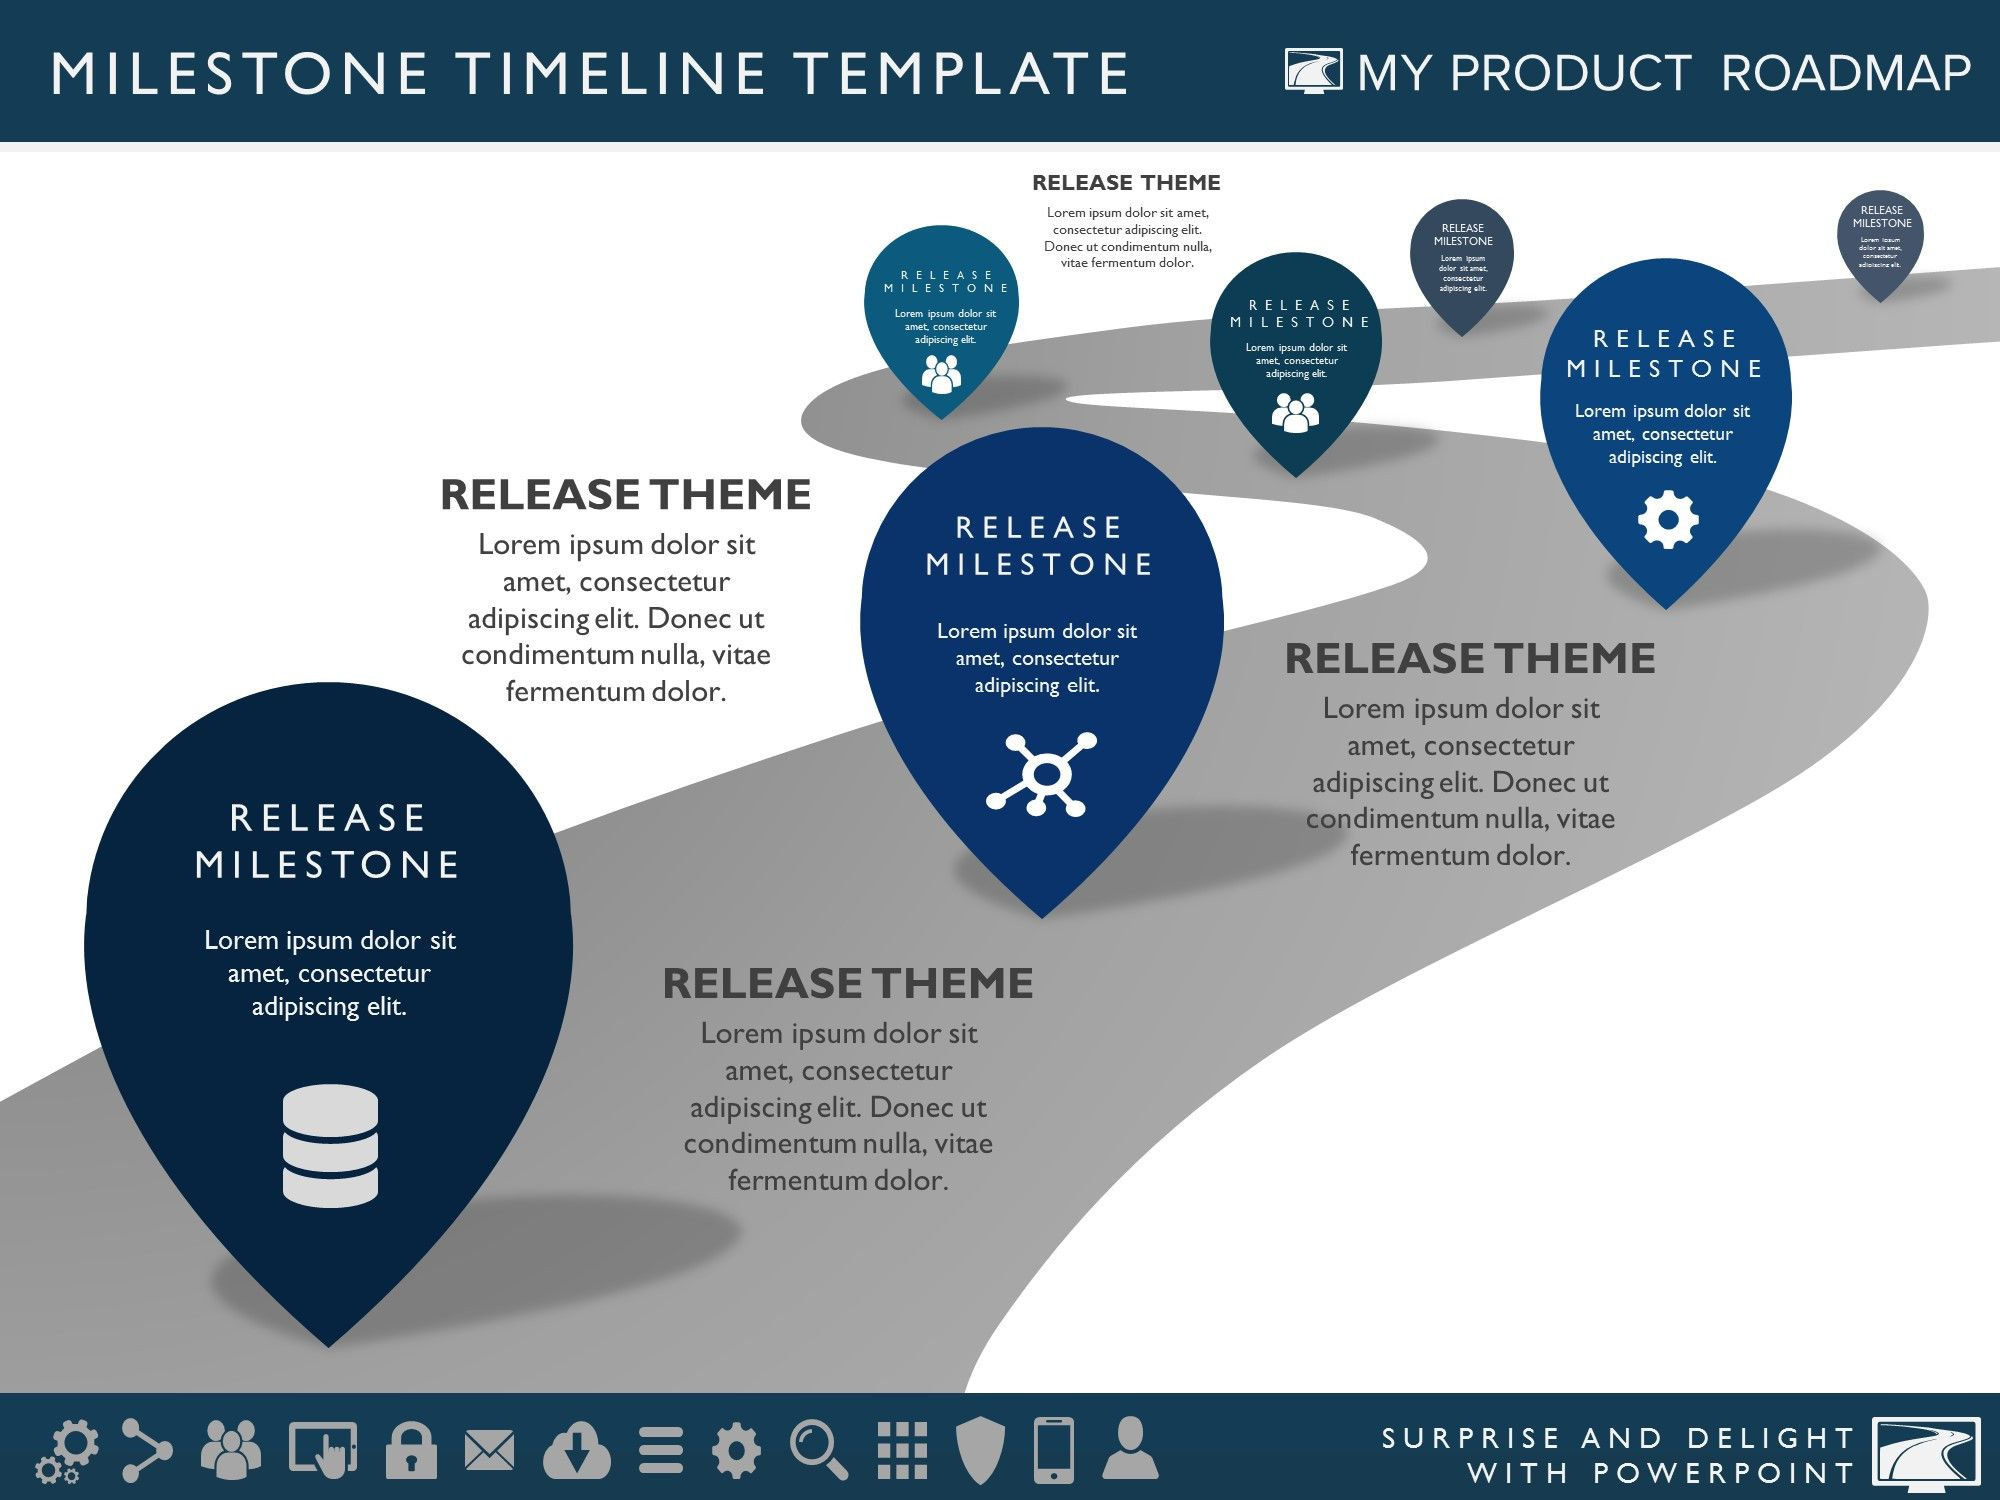 Six Phase Product Portfolio Timeline Roadmapping PowerPoint - Roadmap timeline template ppt